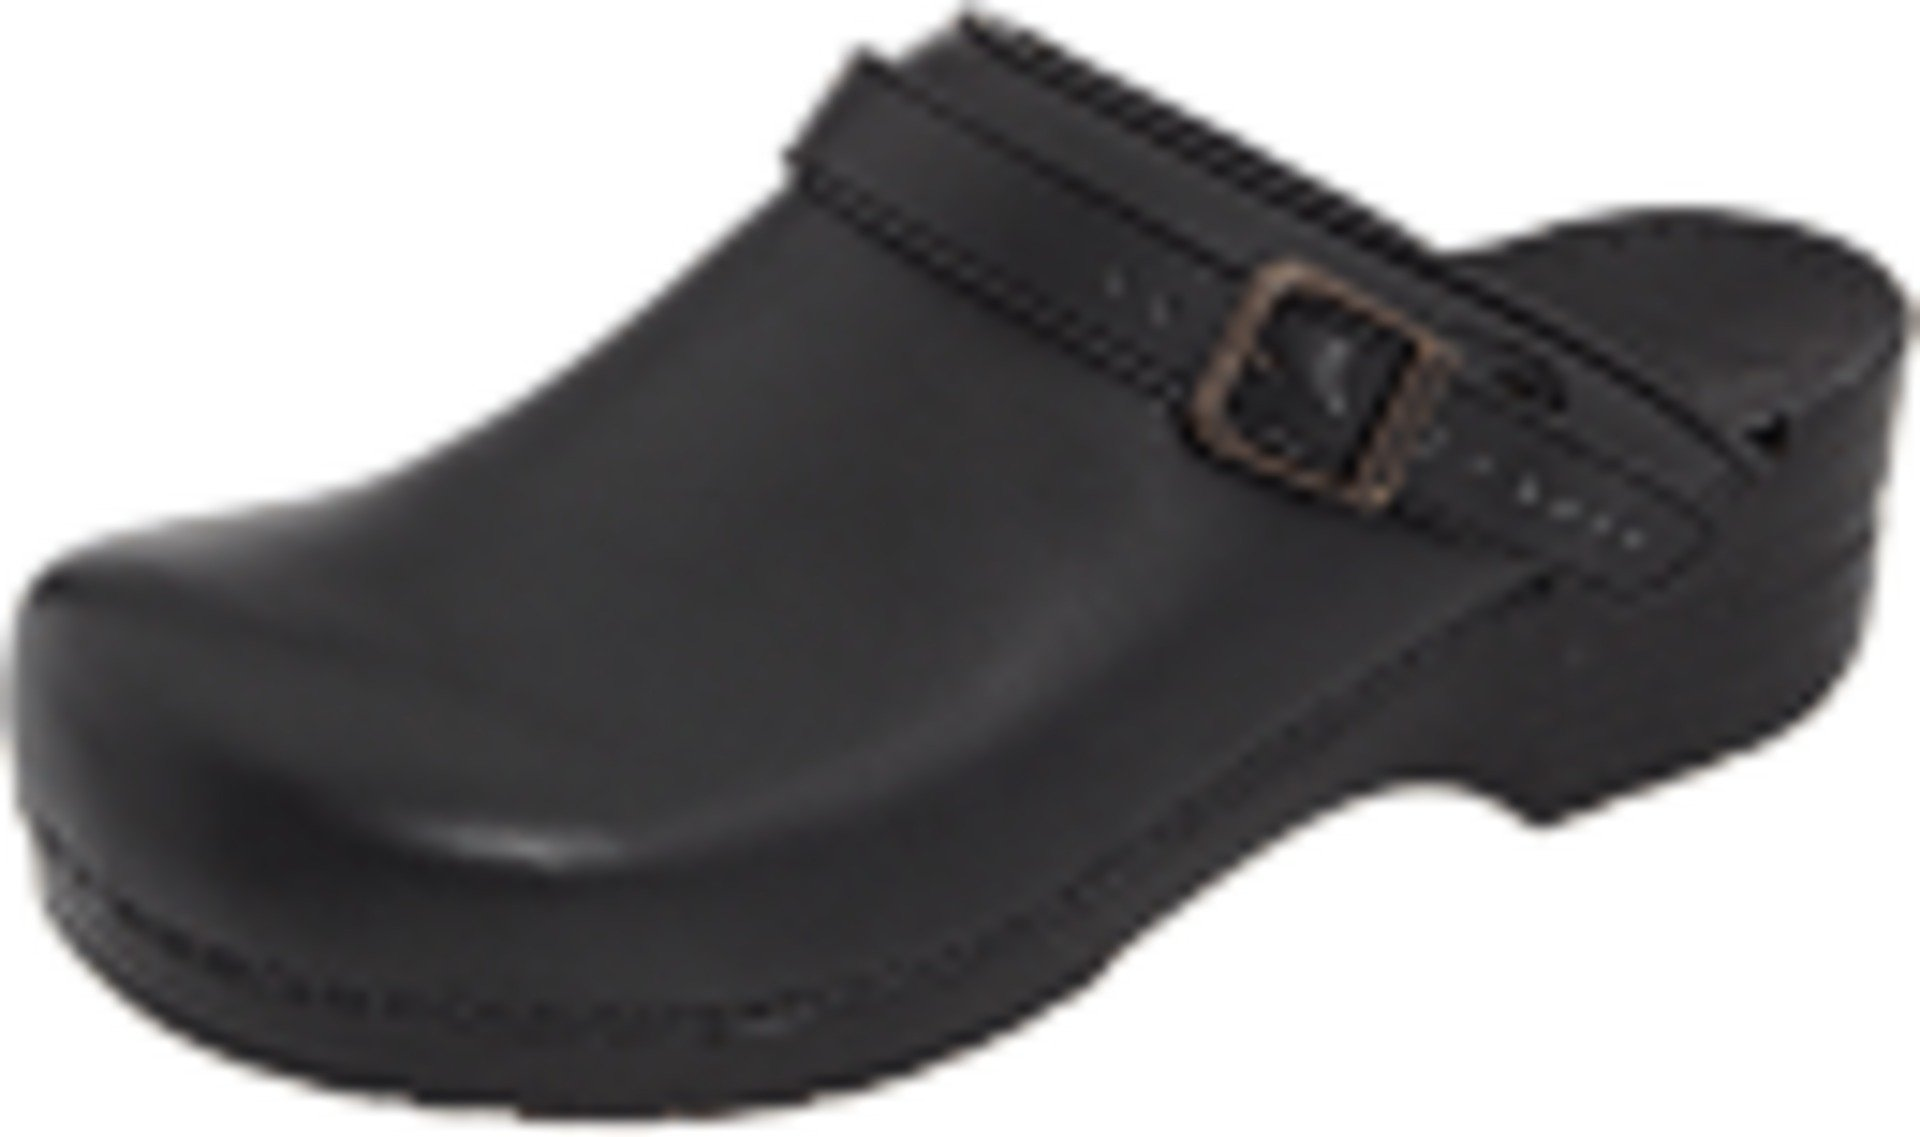 Dansko Shoes Womens Clogs Ingrid Leather Stability 35 Black 38020202 by Dansko